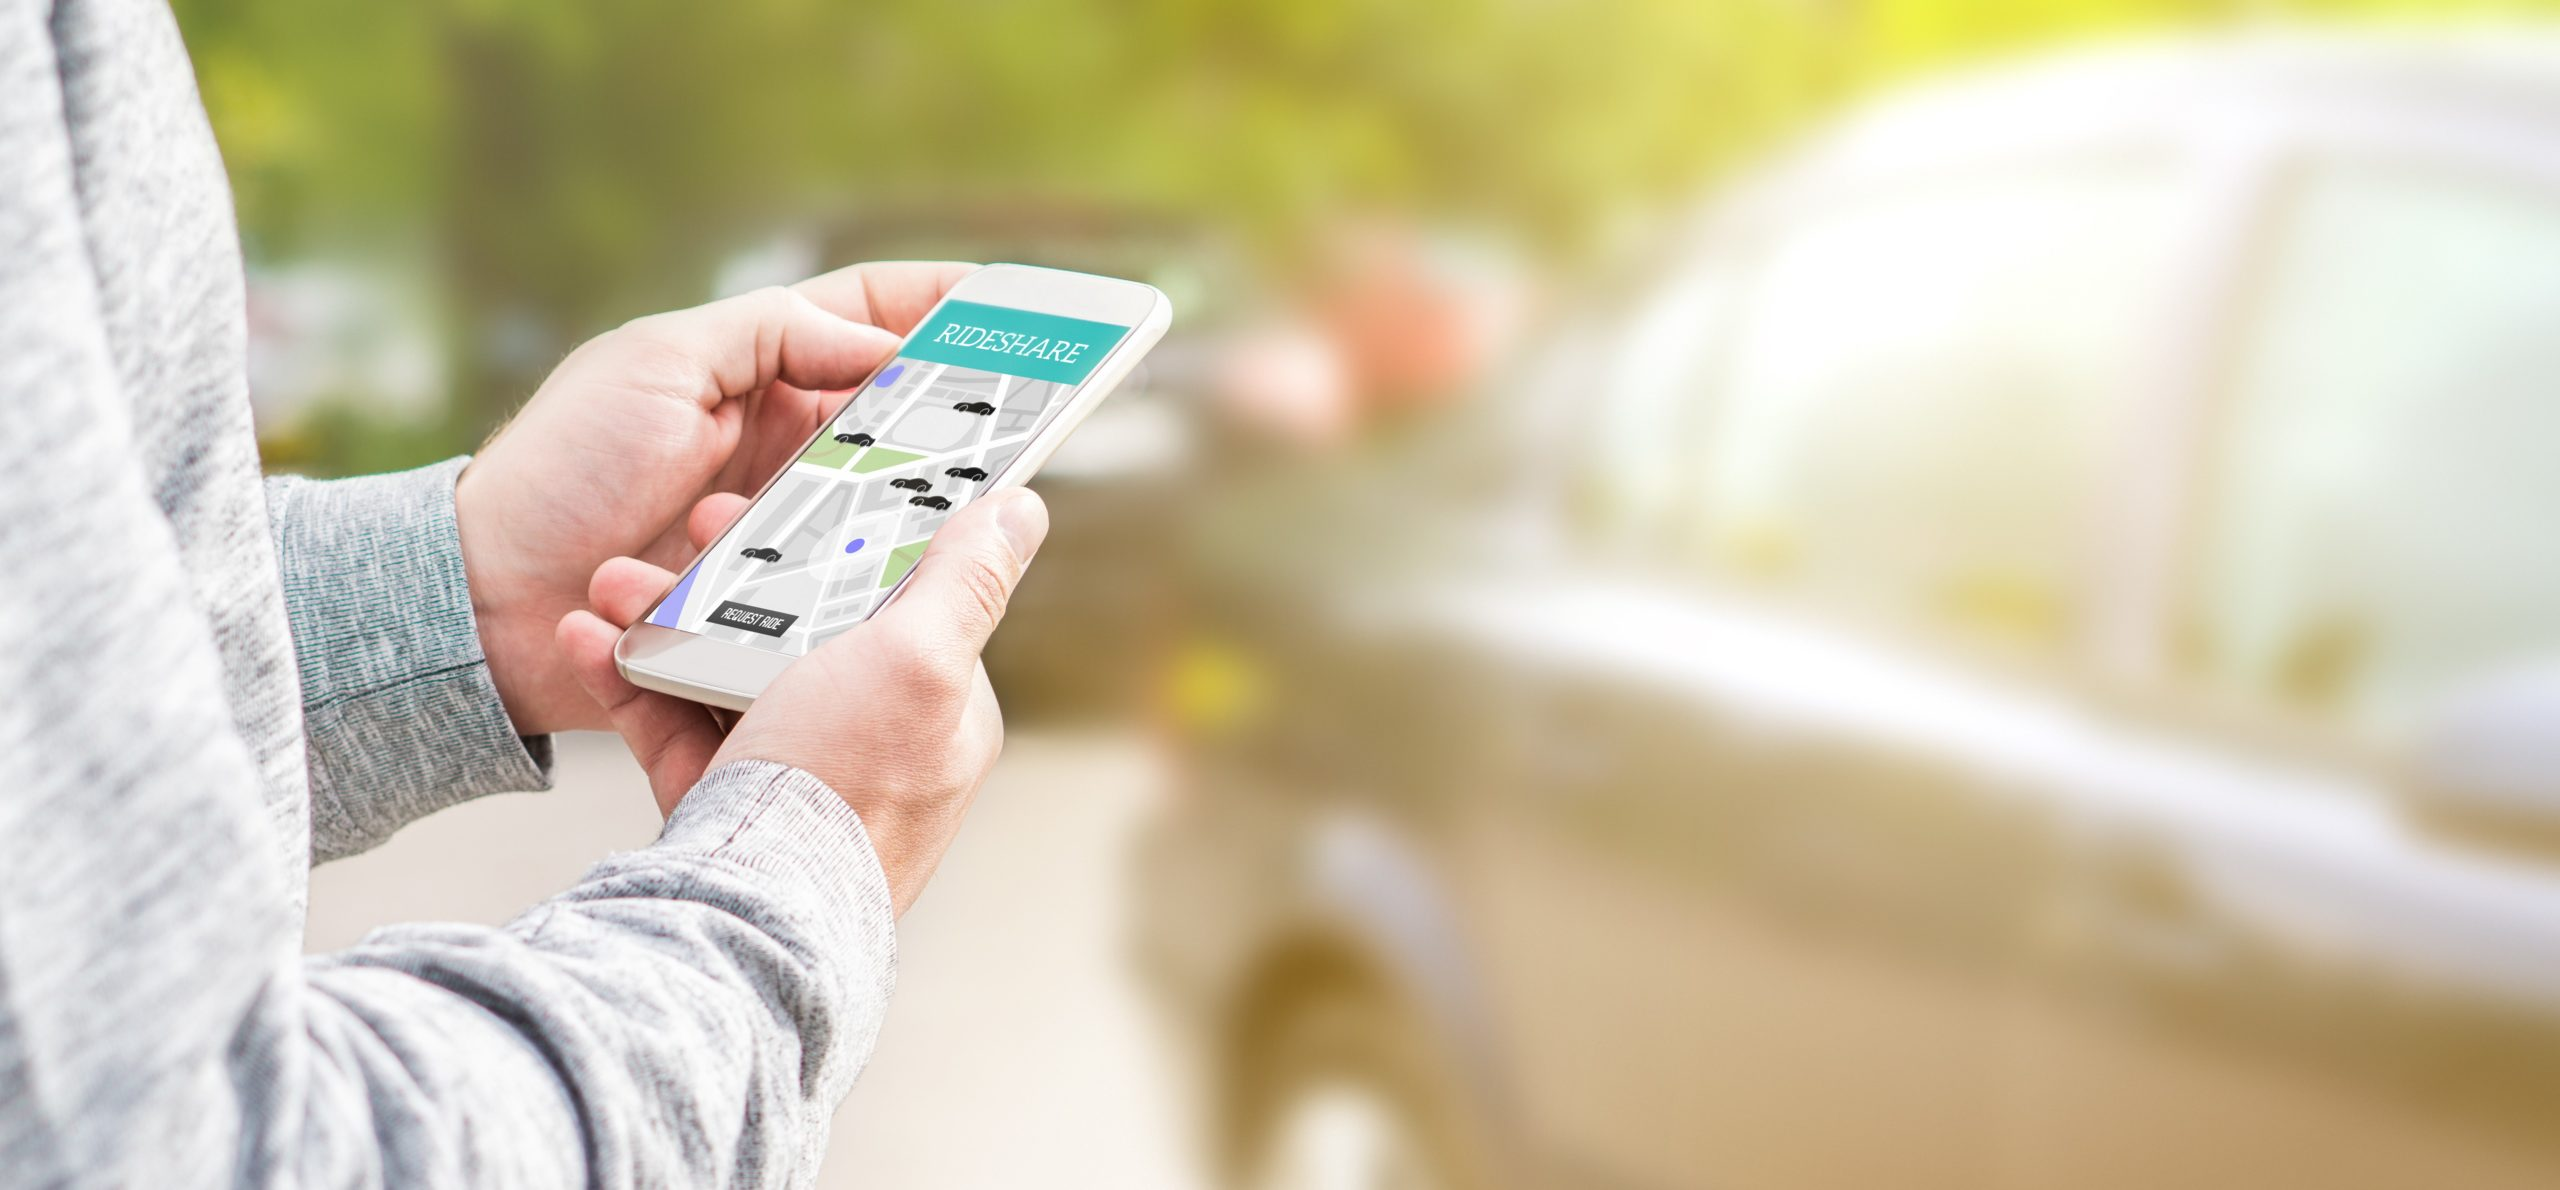 Partnering with InsurTechs to face the challenge of Mobility as a Service